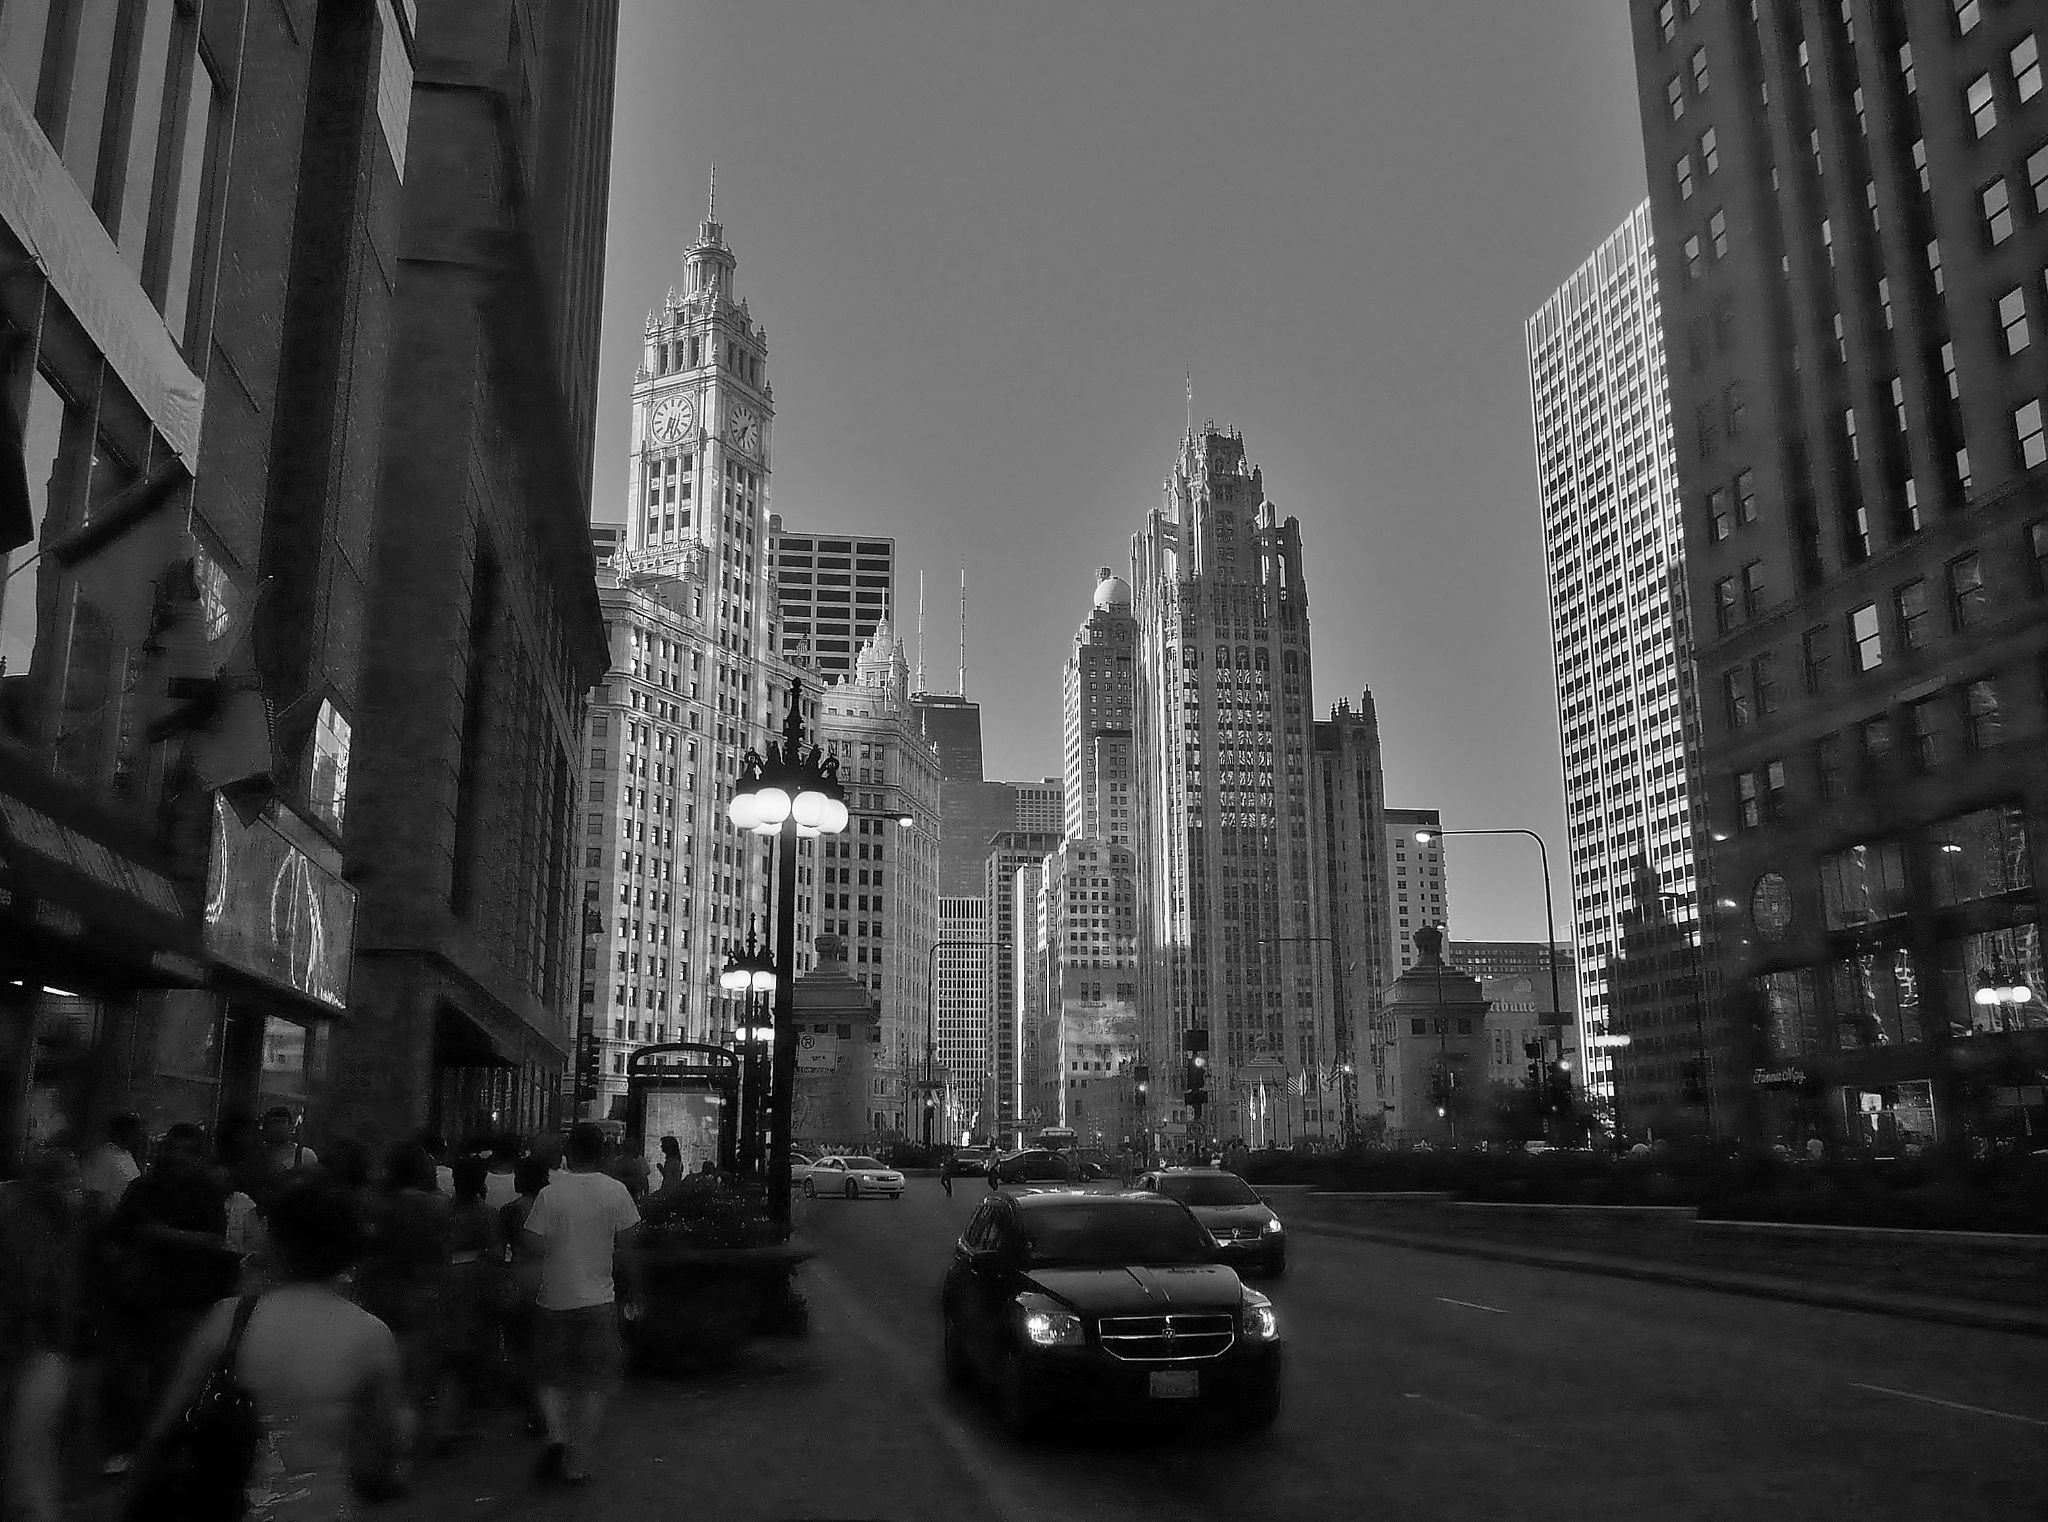 Chicago Evening by junkshopfiddler